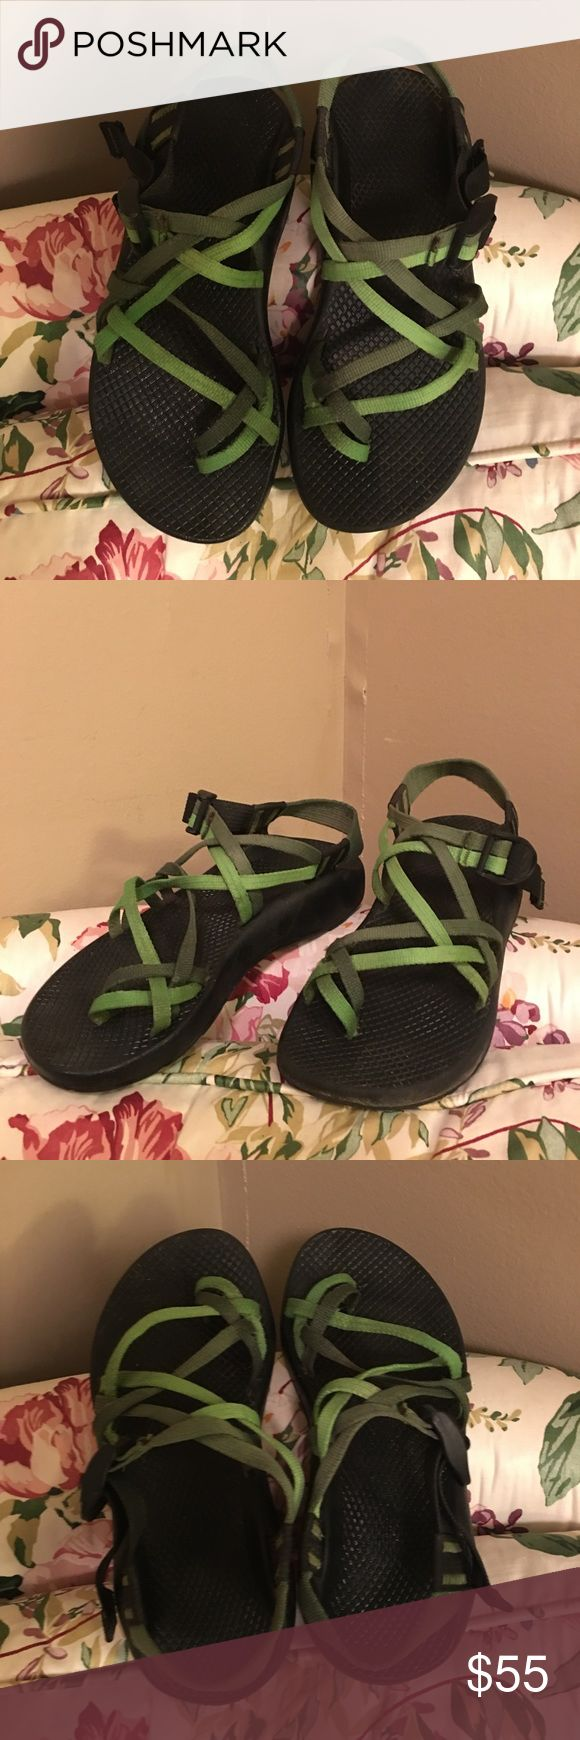 Green Chaco Zvolv X2 Sandal These are in pretty great condition with many years of wear left in them! The straps are adjustable and are 2 different shades of green. Great for traveling, hiking, walking or any day-to-day adventure! :-) Chaco Shoes Sandals